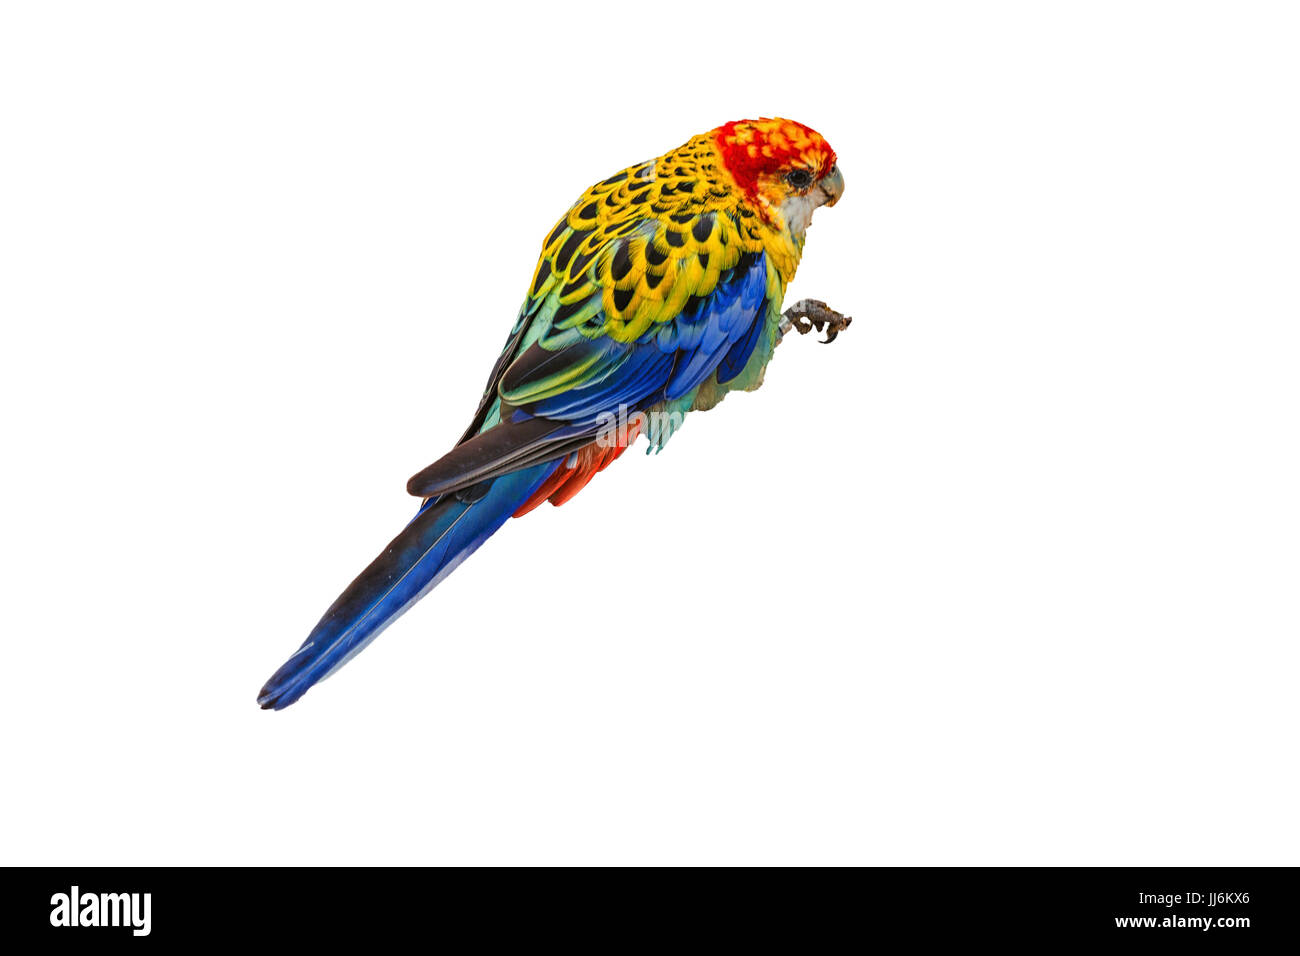 White-breasted parakeet or also called Rosella against white background. - Stock Image